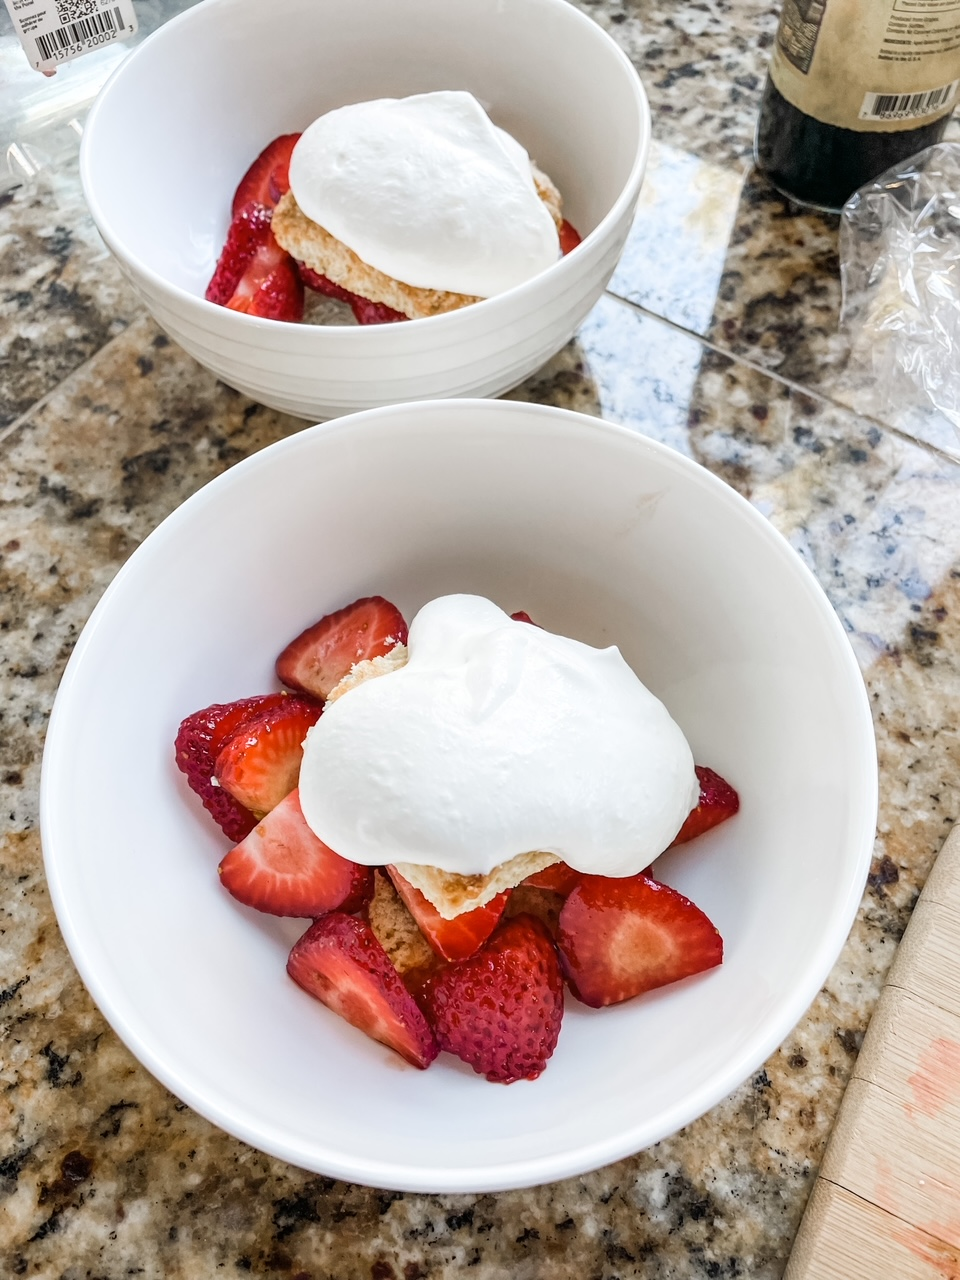 The finished Homemade Shortcake Biscuits topped with strawberries, whipped cream, served in white bowls